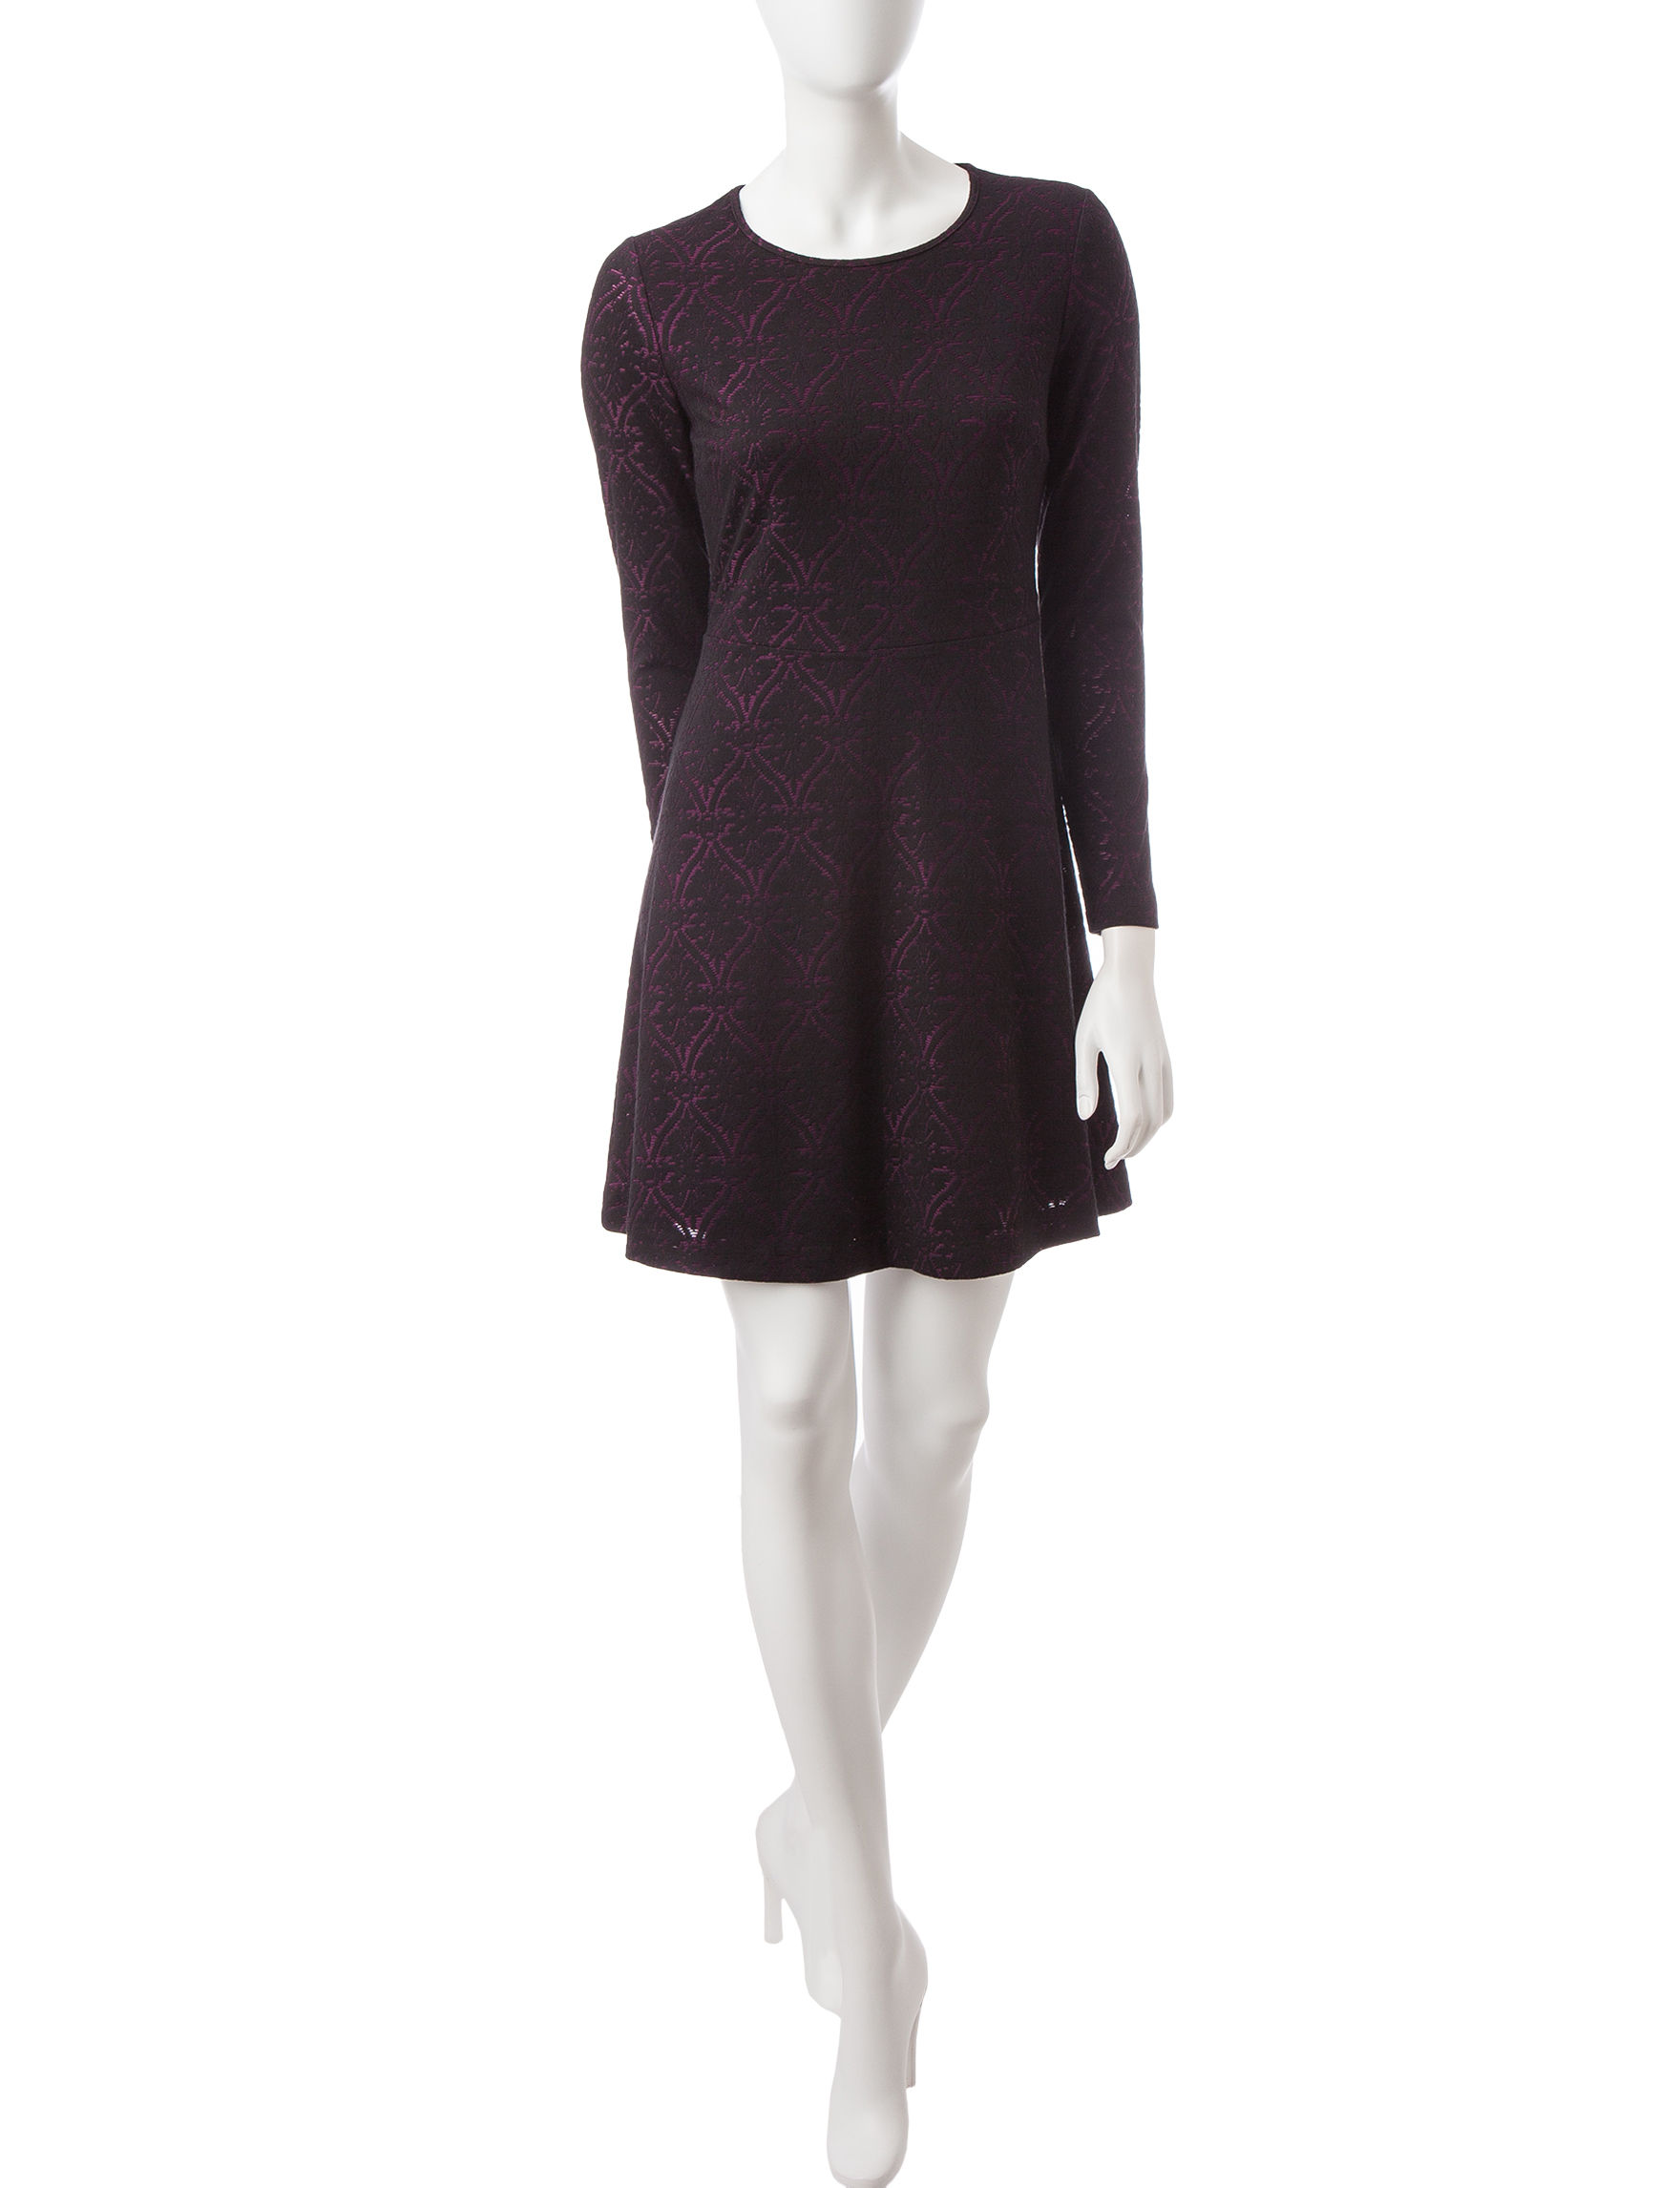 Kensie Purple Everyday & Casual A-line Dresses